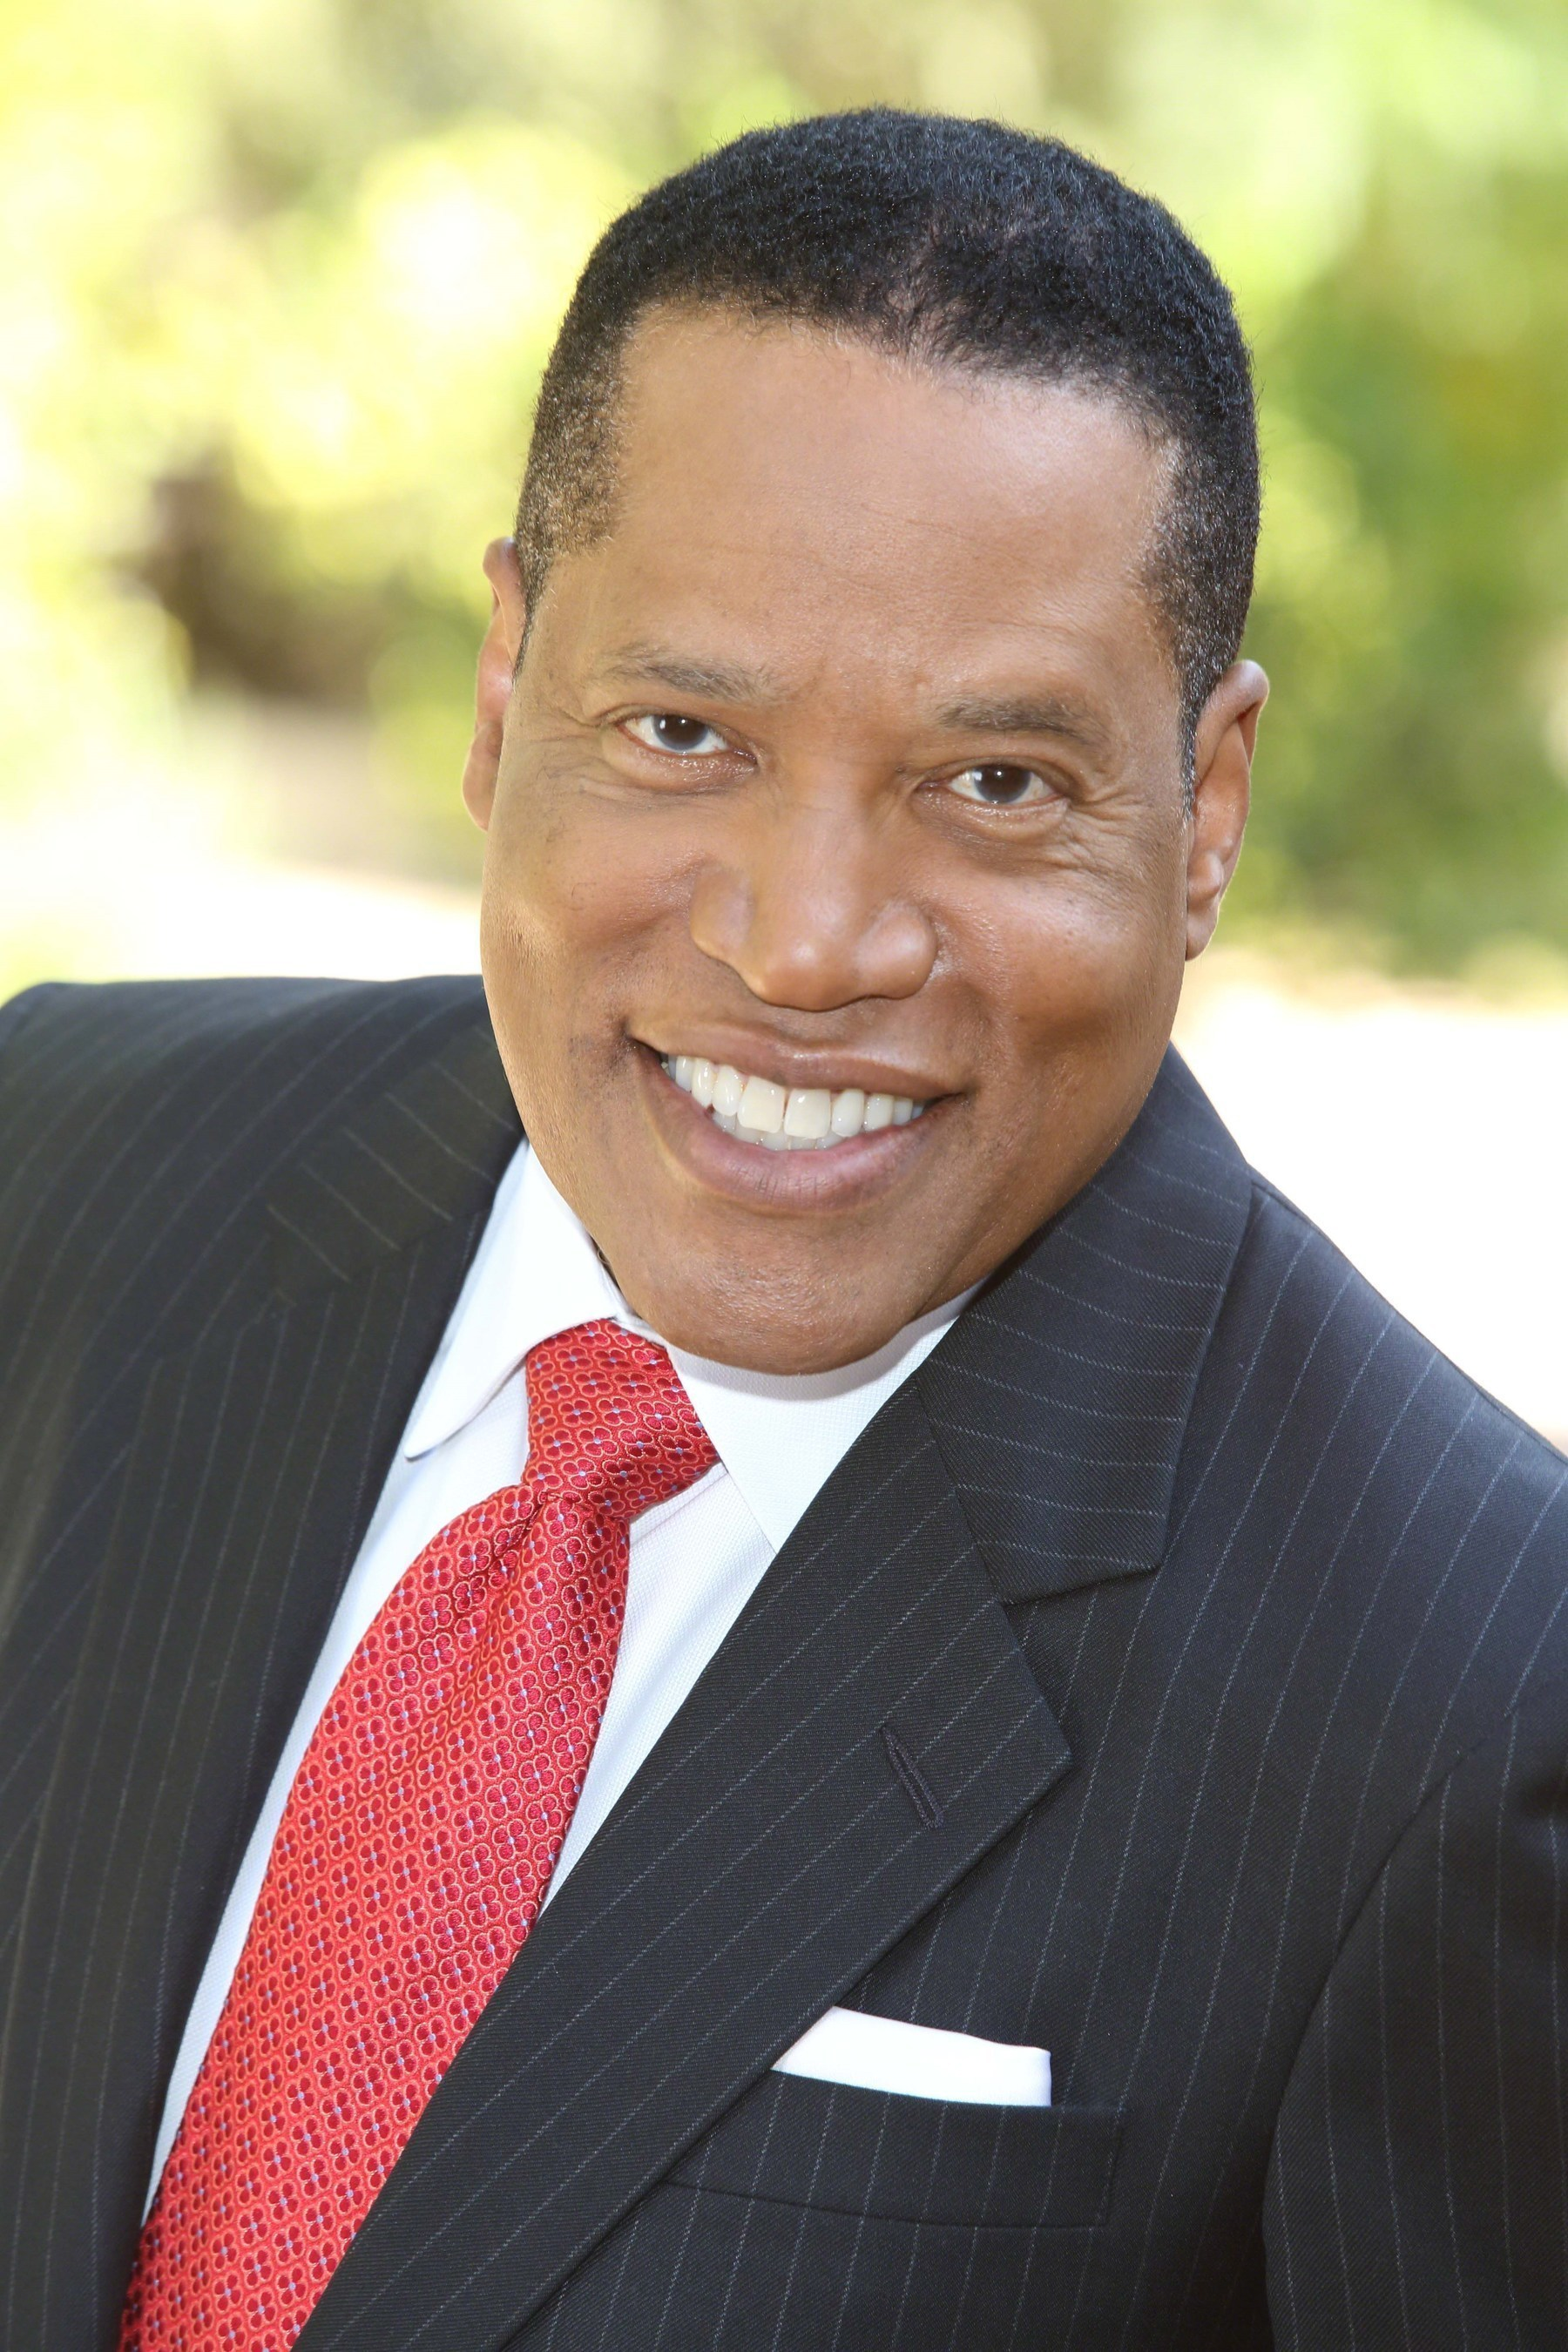 Salem Media Group Announces Larry Elder to Take the Hugh Hewitt Slot in National Syndication